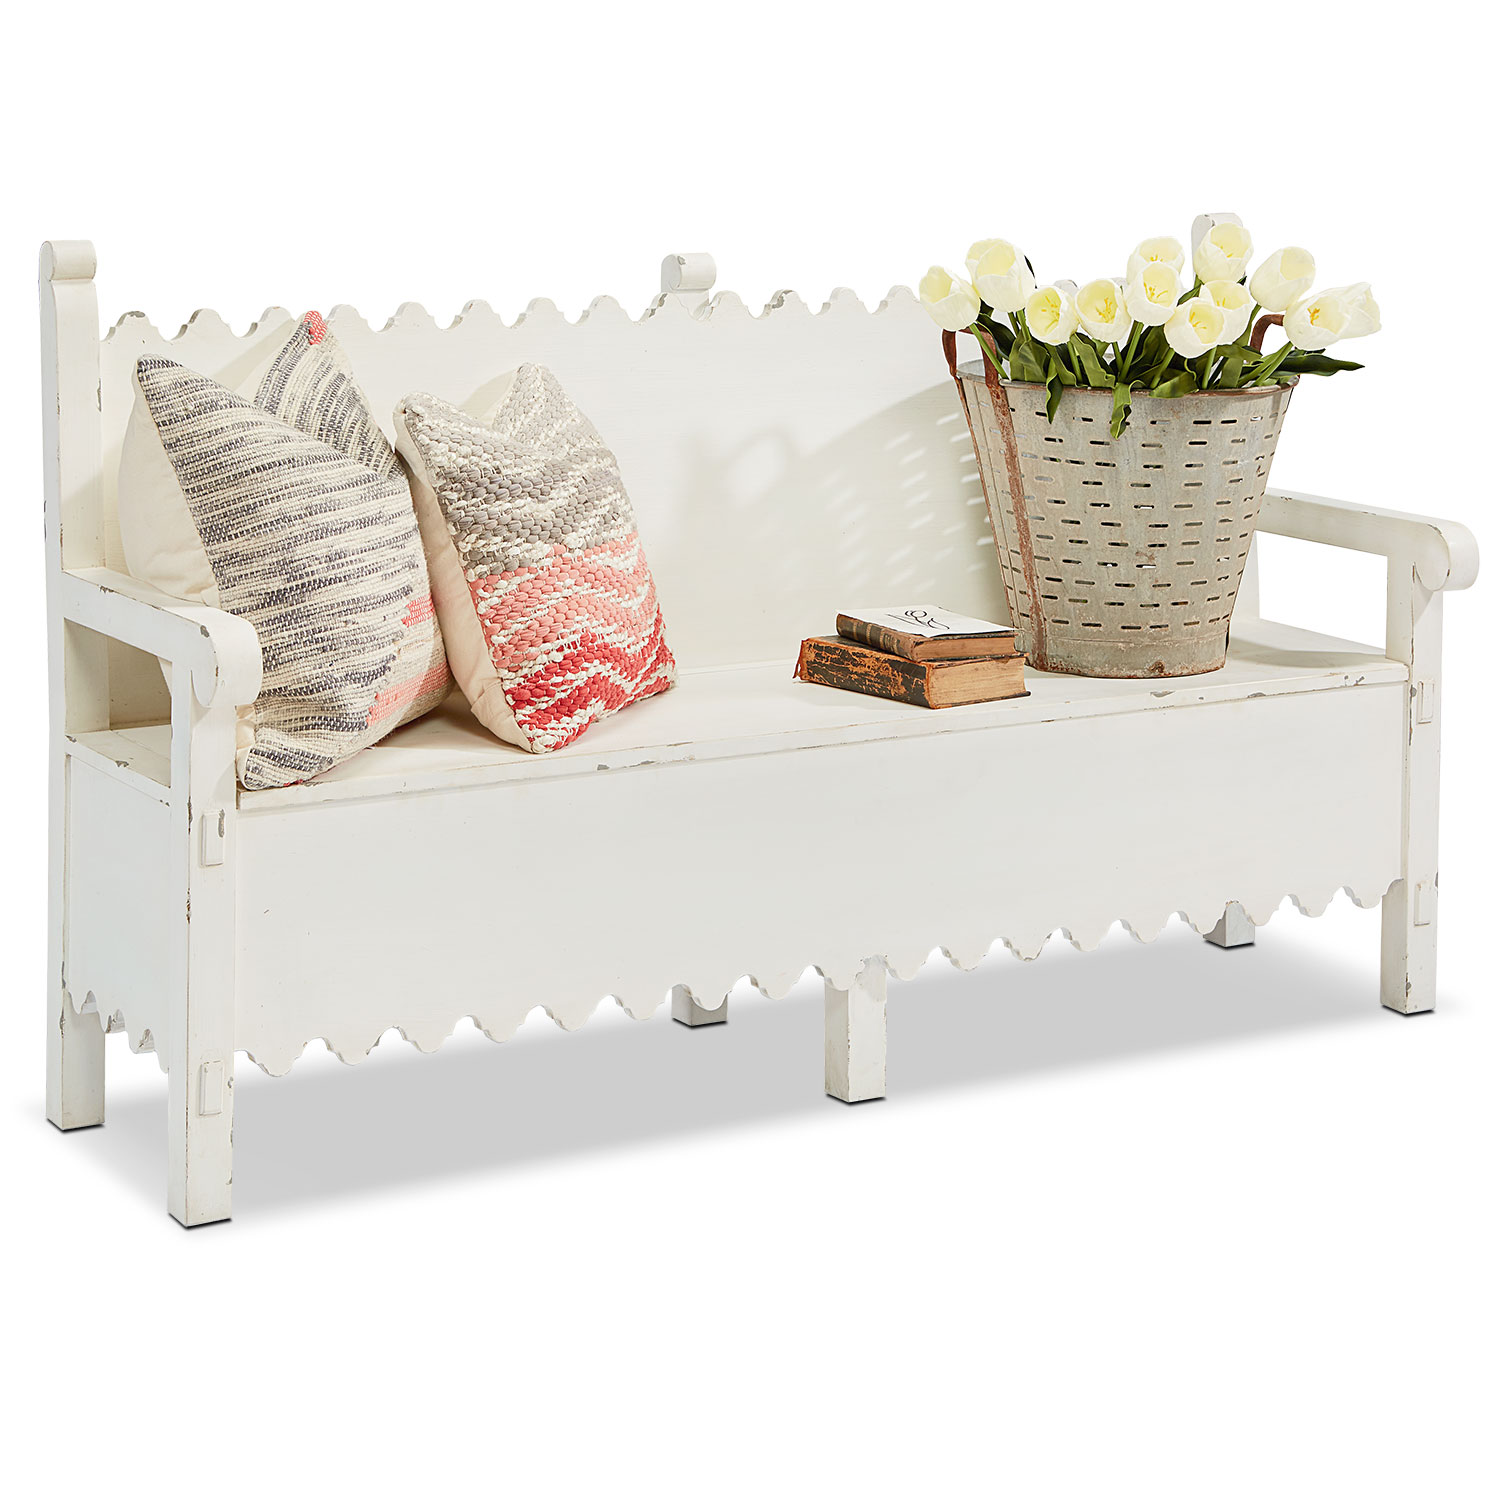 Farmhouse Scallop Bench with Storage - White